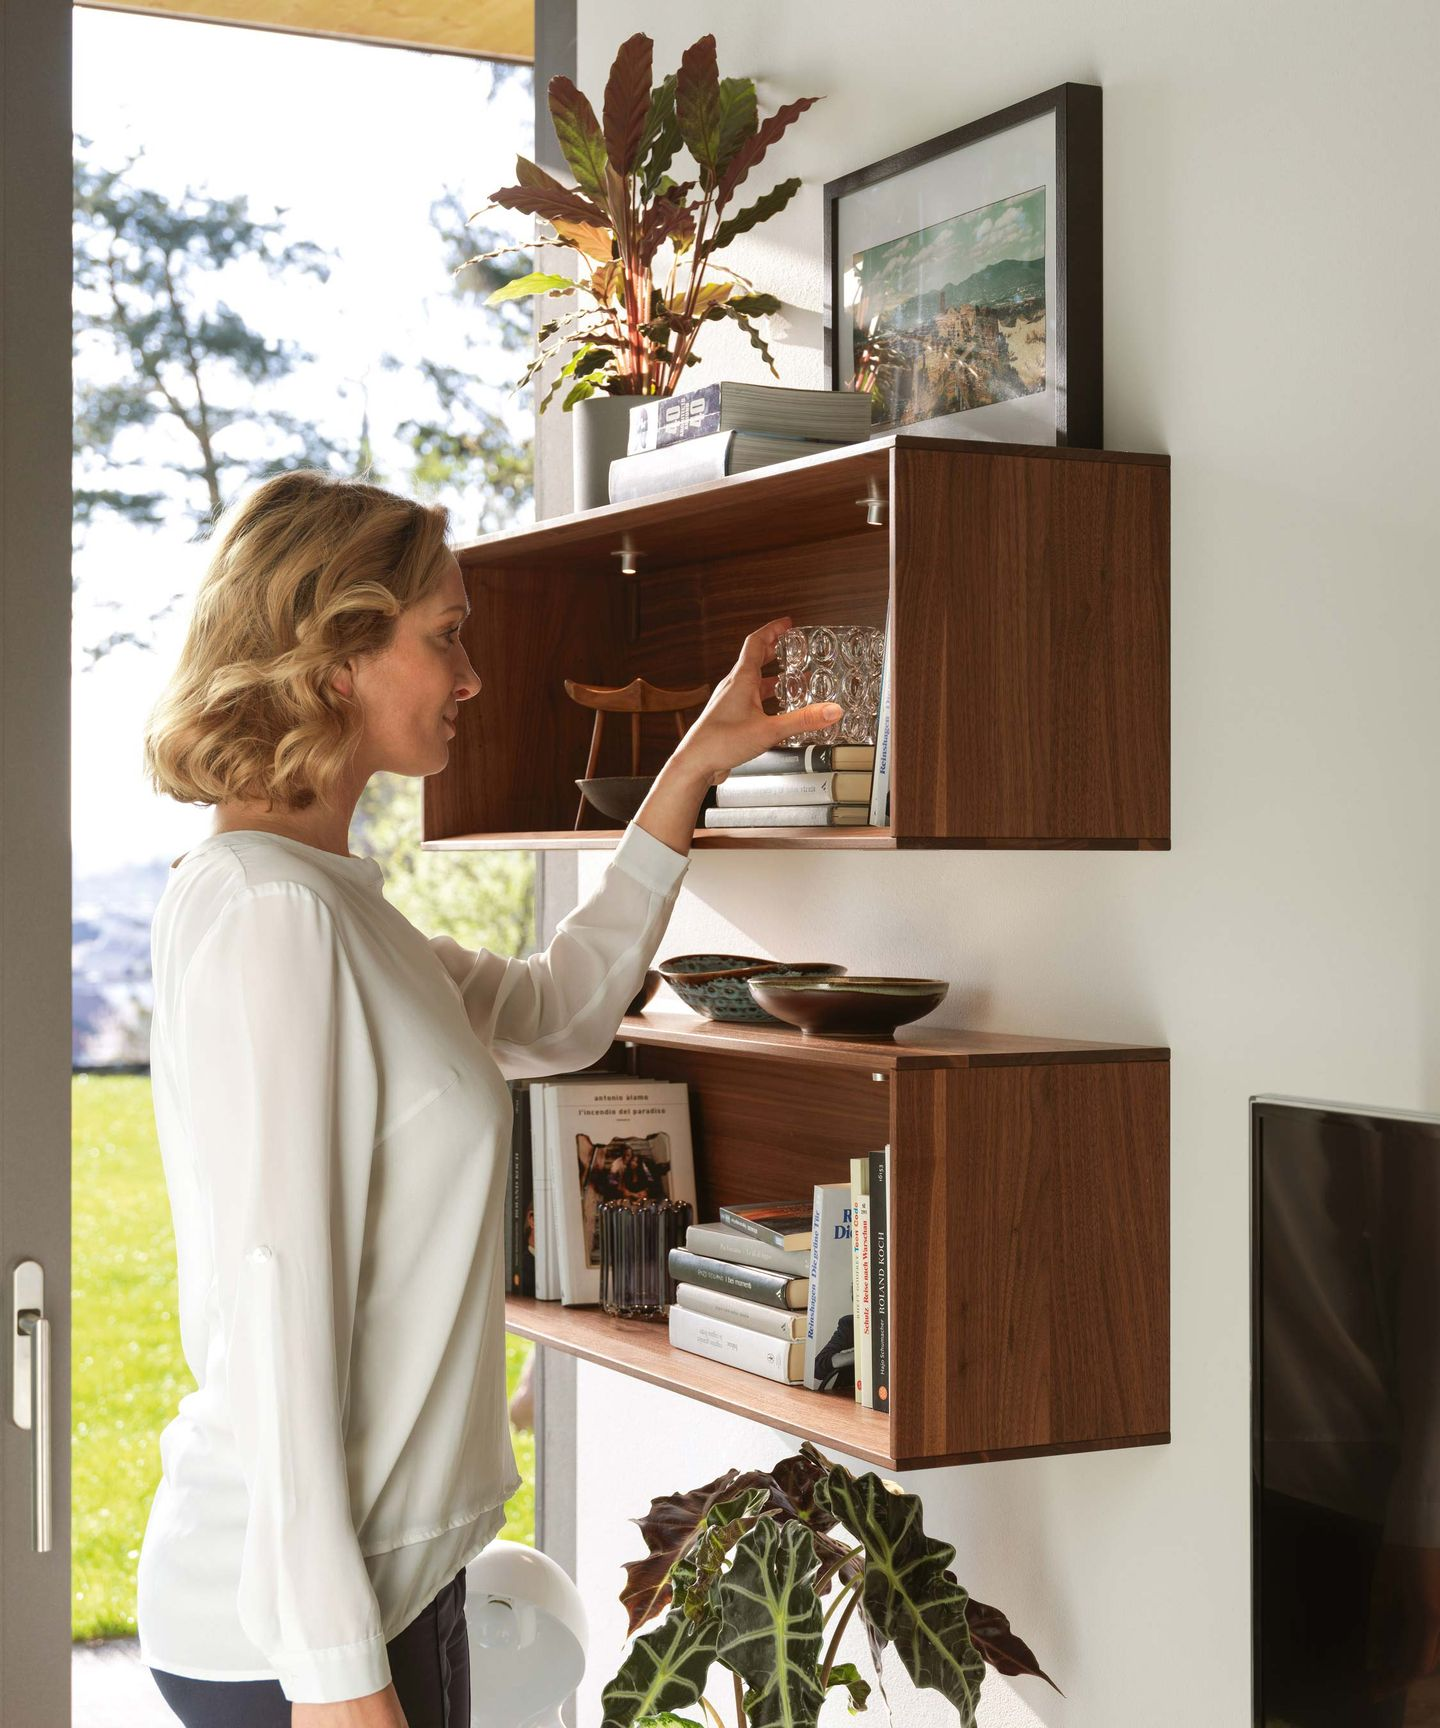 design elements of cubus pure living in walnut